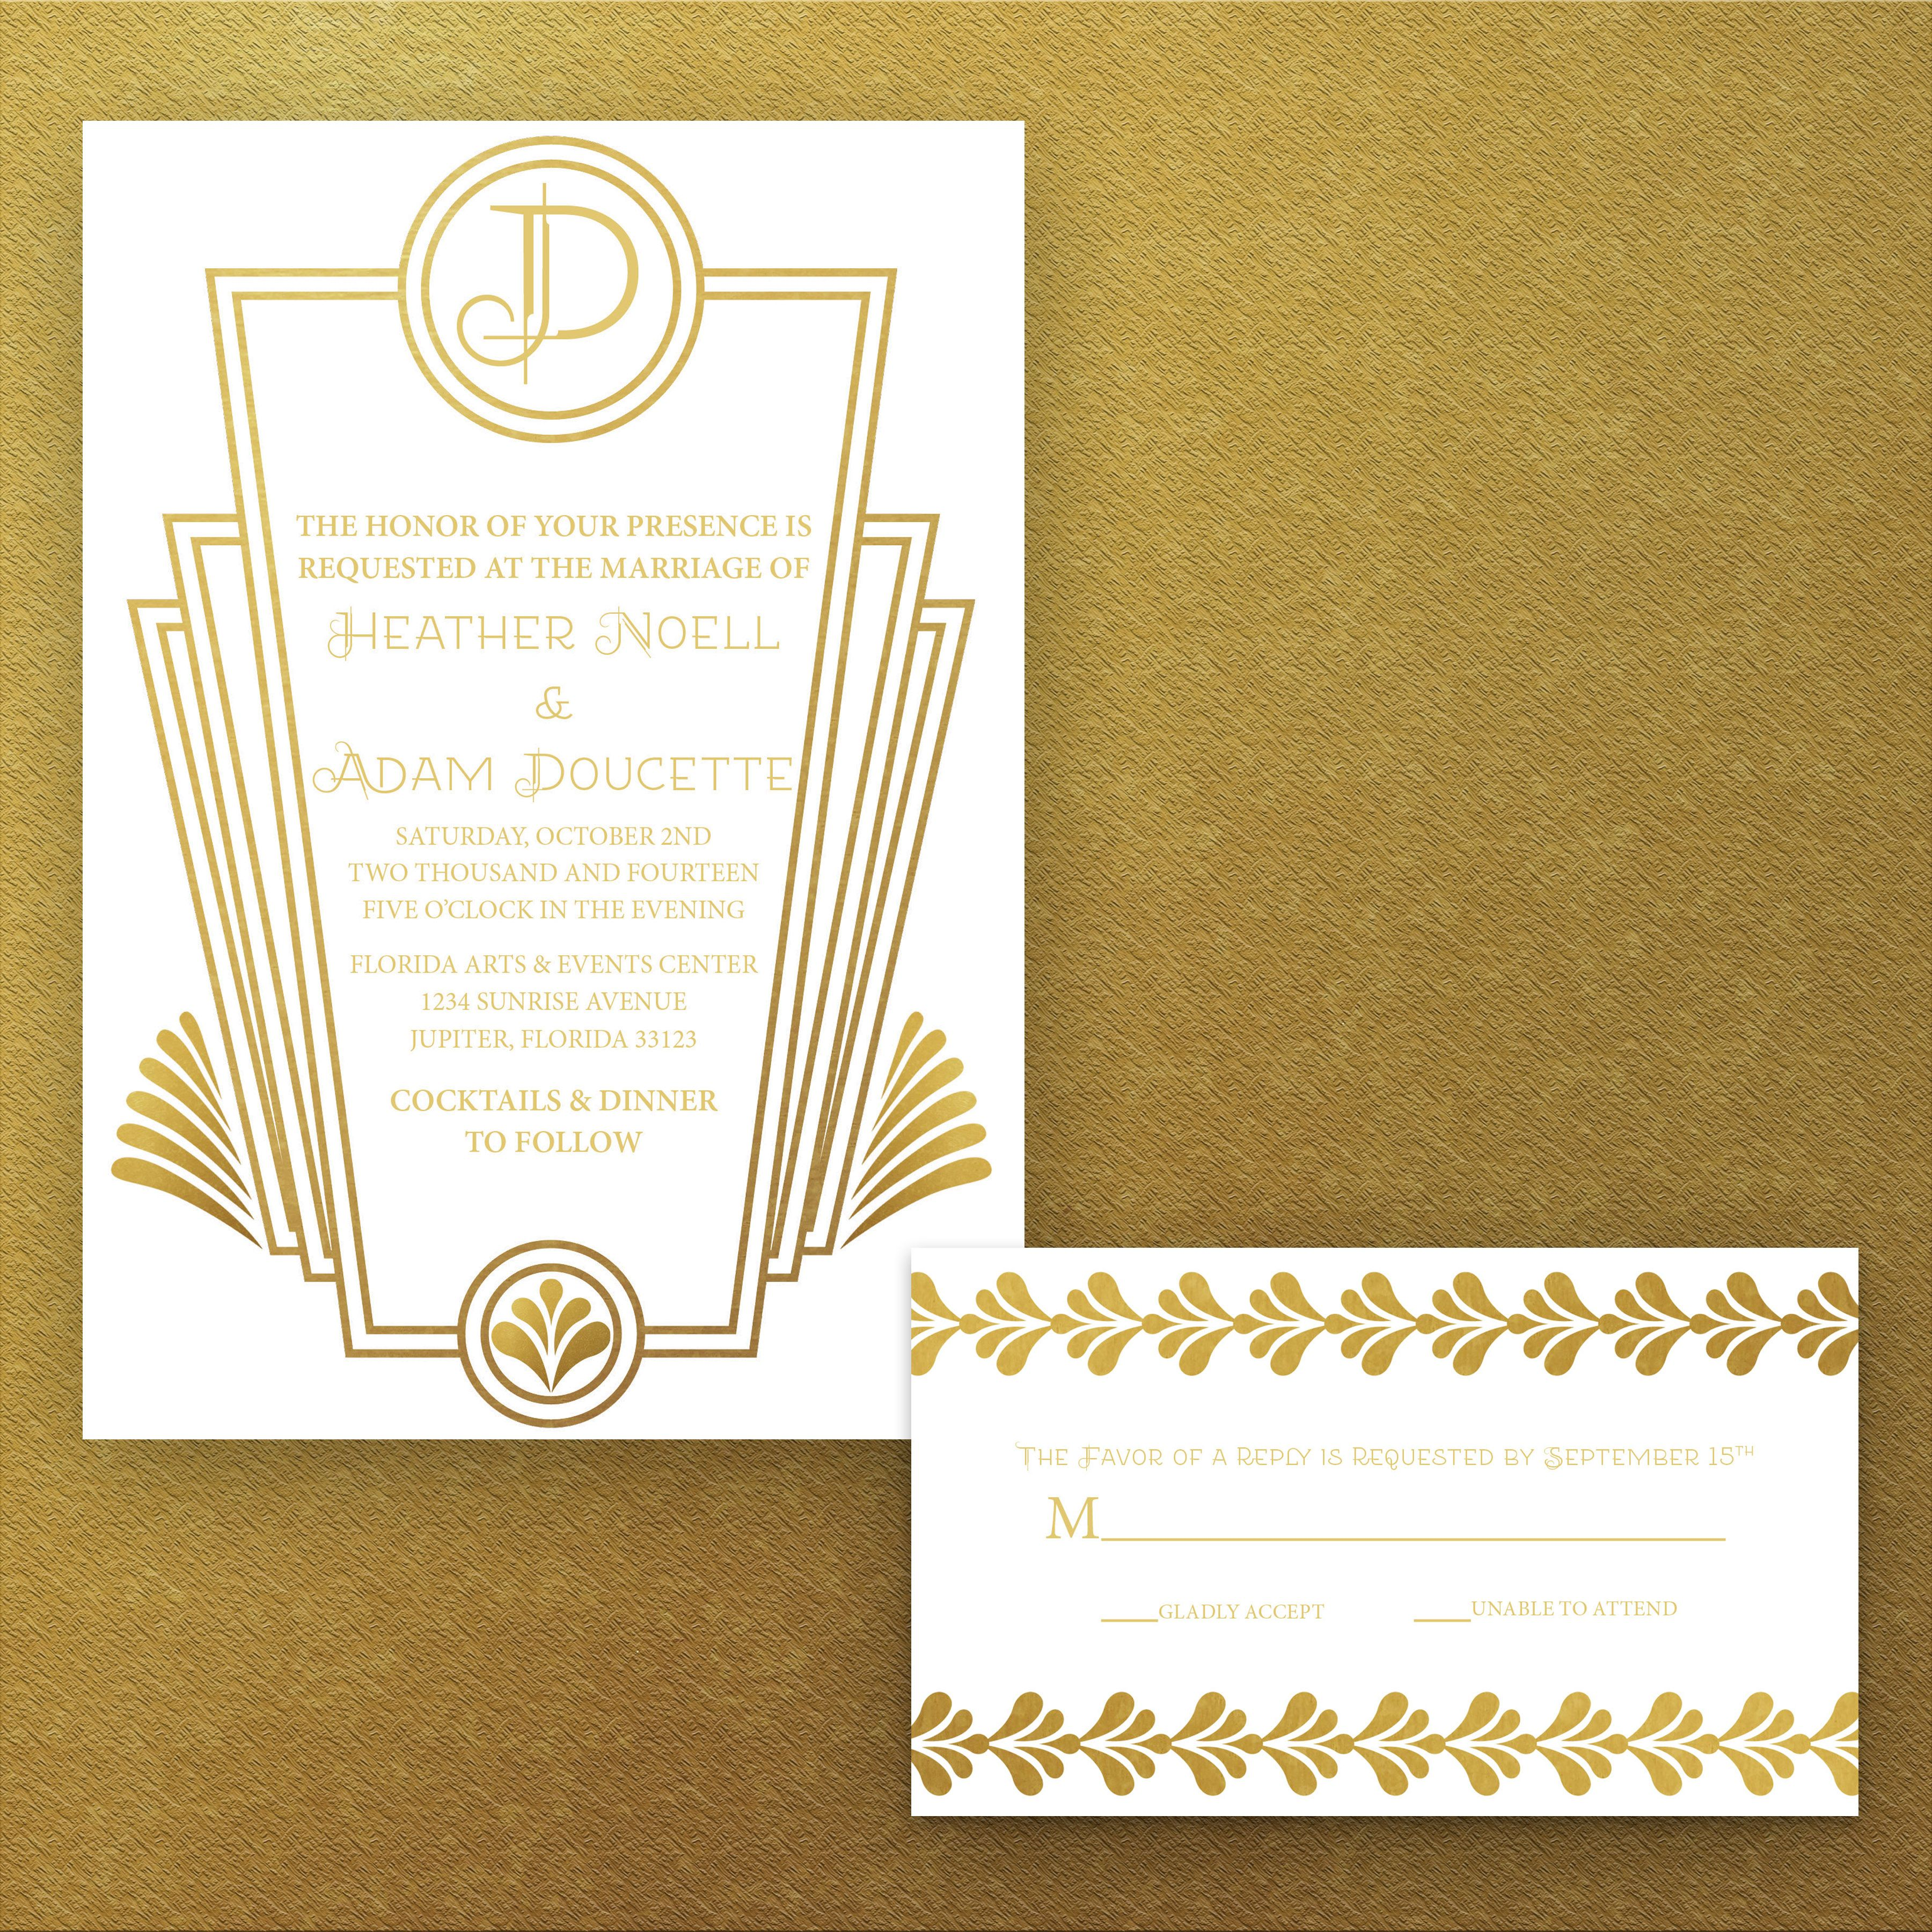 Great Gatsby Baby Shower Invitations | www.topsimages.com